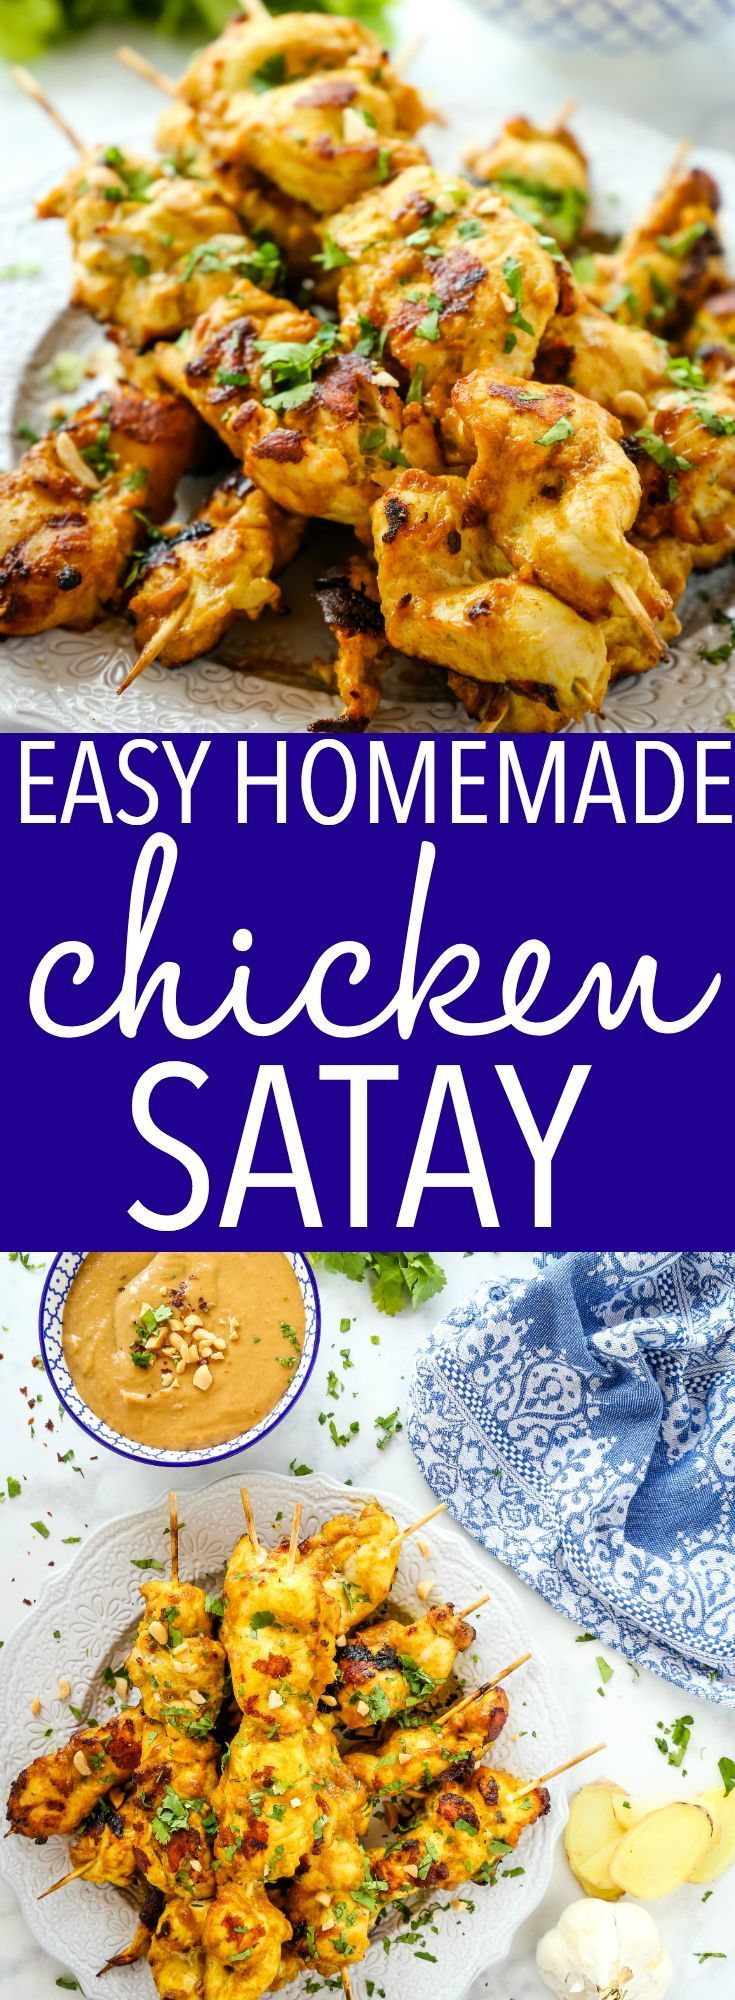 Easy Homemade Chicken Satay with Peanut Dipping Sauce